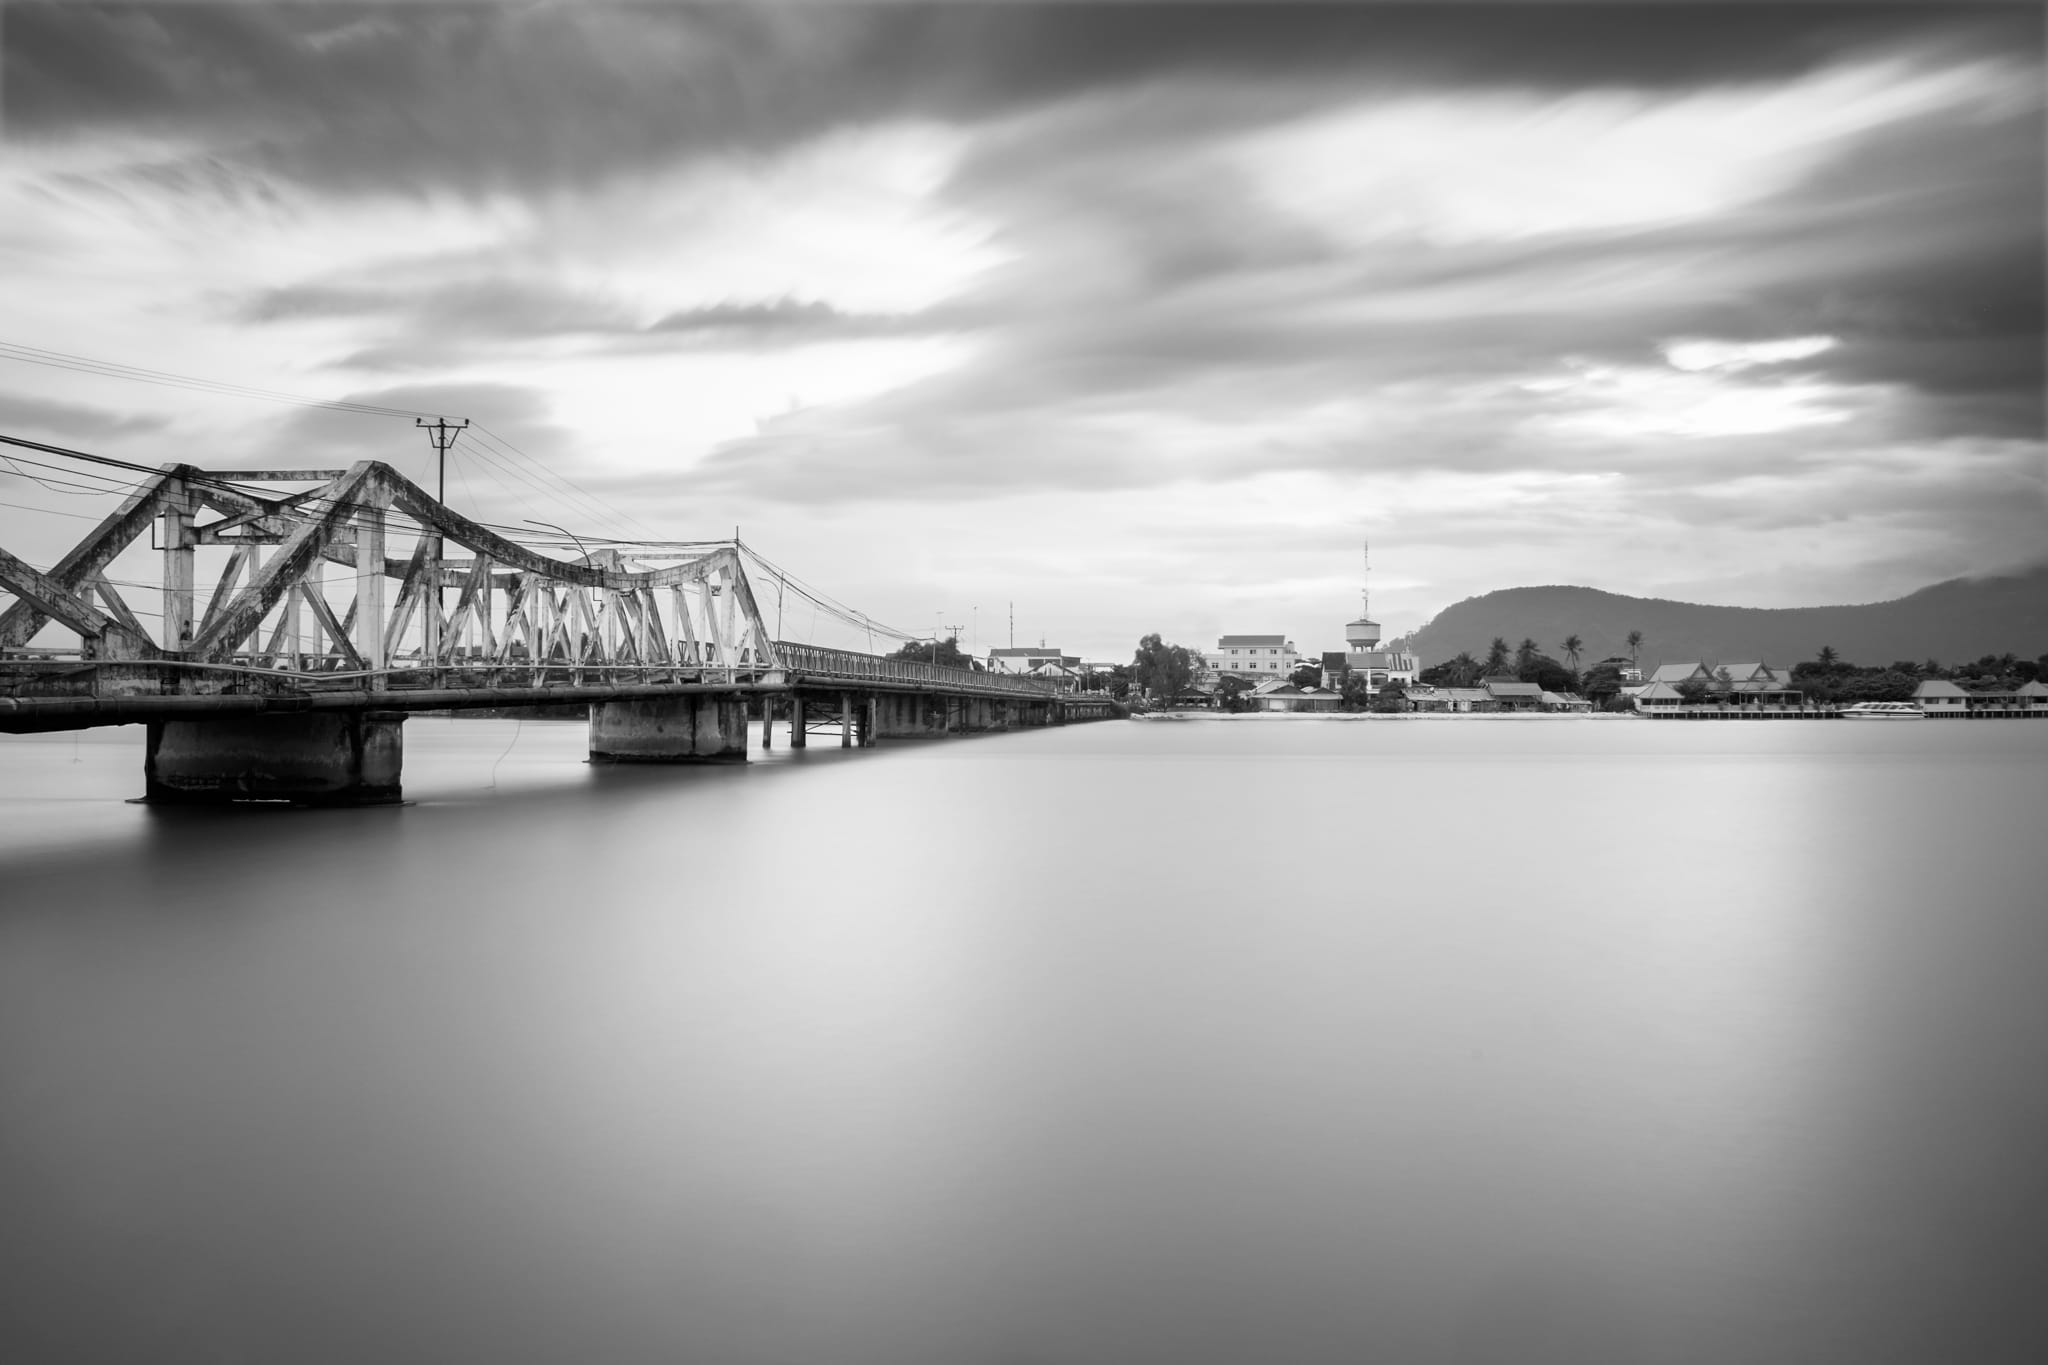 Long exposure of the old French bridge over Kampot River in B & W. Kampot, Cambodia. Clouds and water look very smooth and silky.